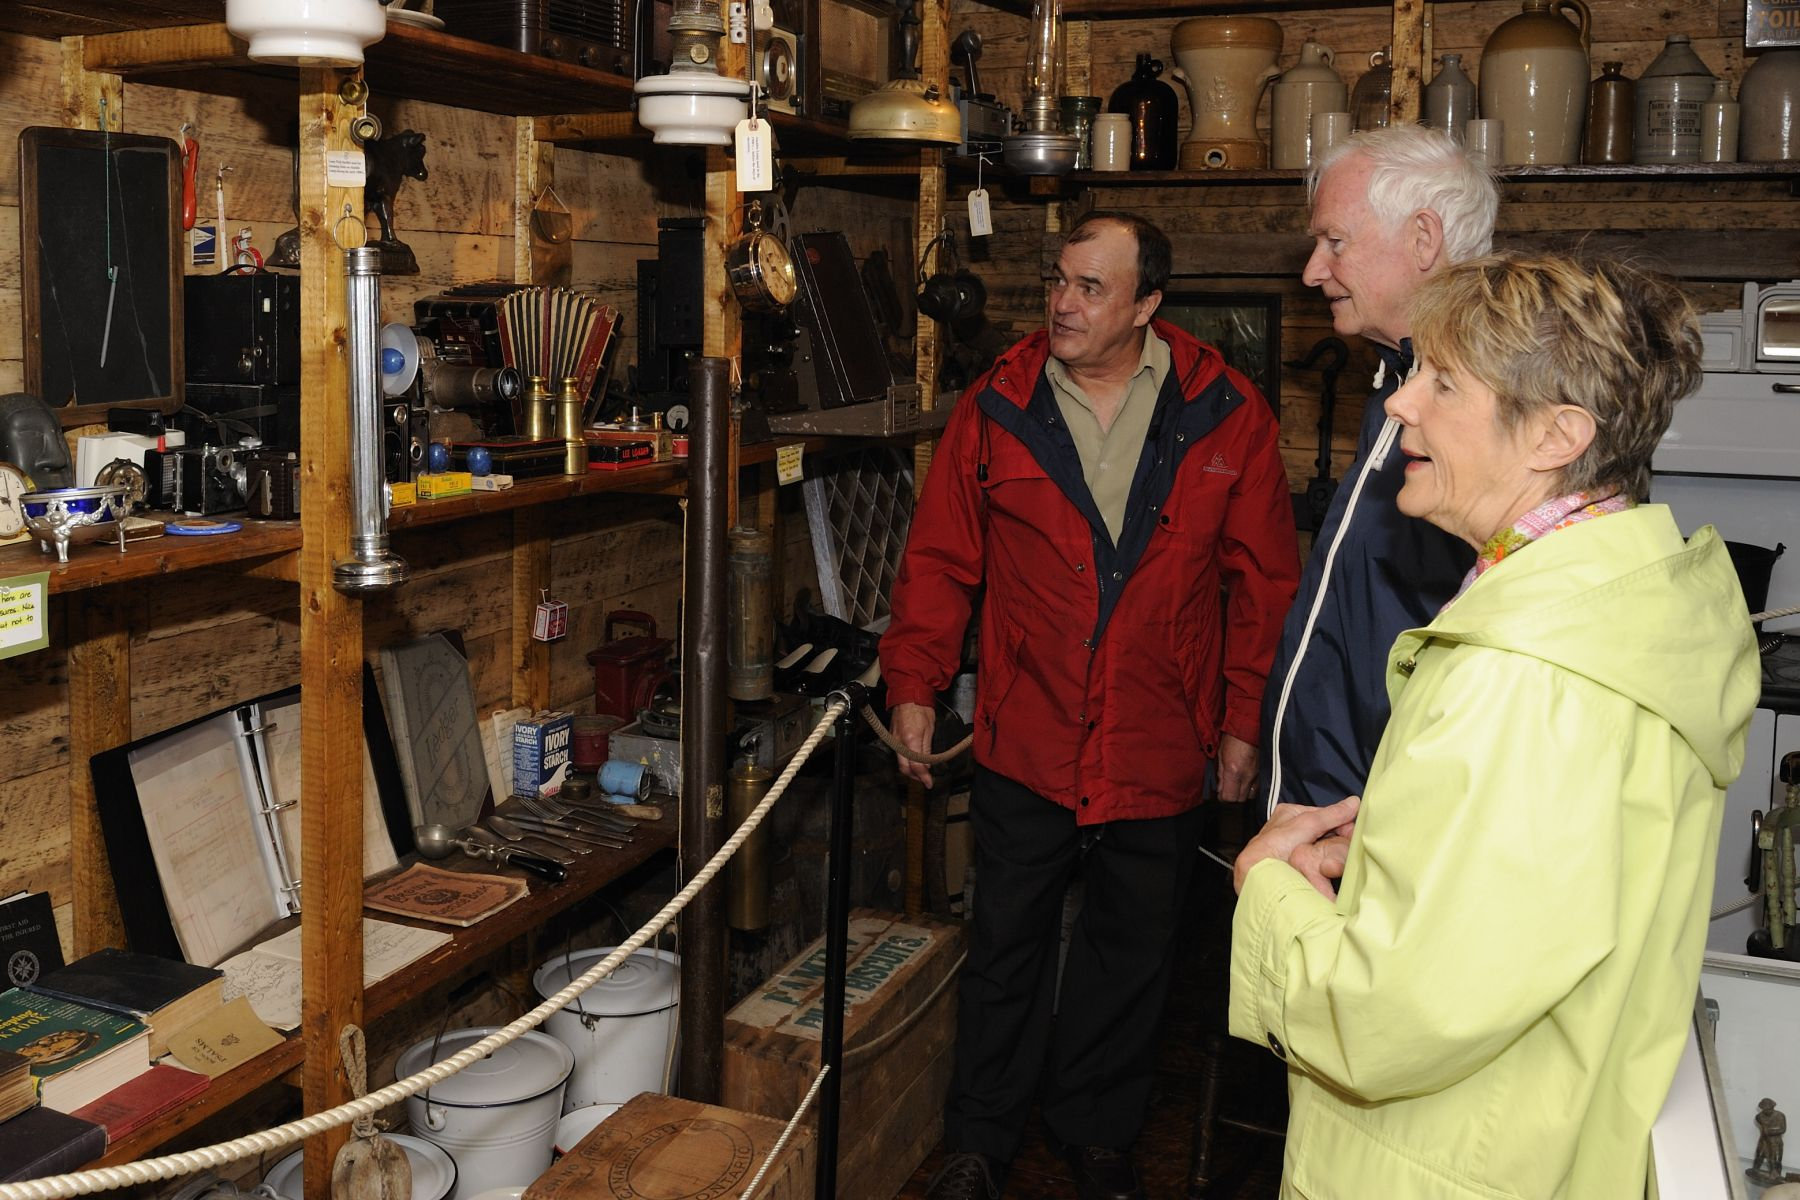 They also conducted a walkabout to visit a variety of local sites, such as the Old Shoppe Museum, which contains a collection of artifacts related to Newfoundland and Labrador's history.